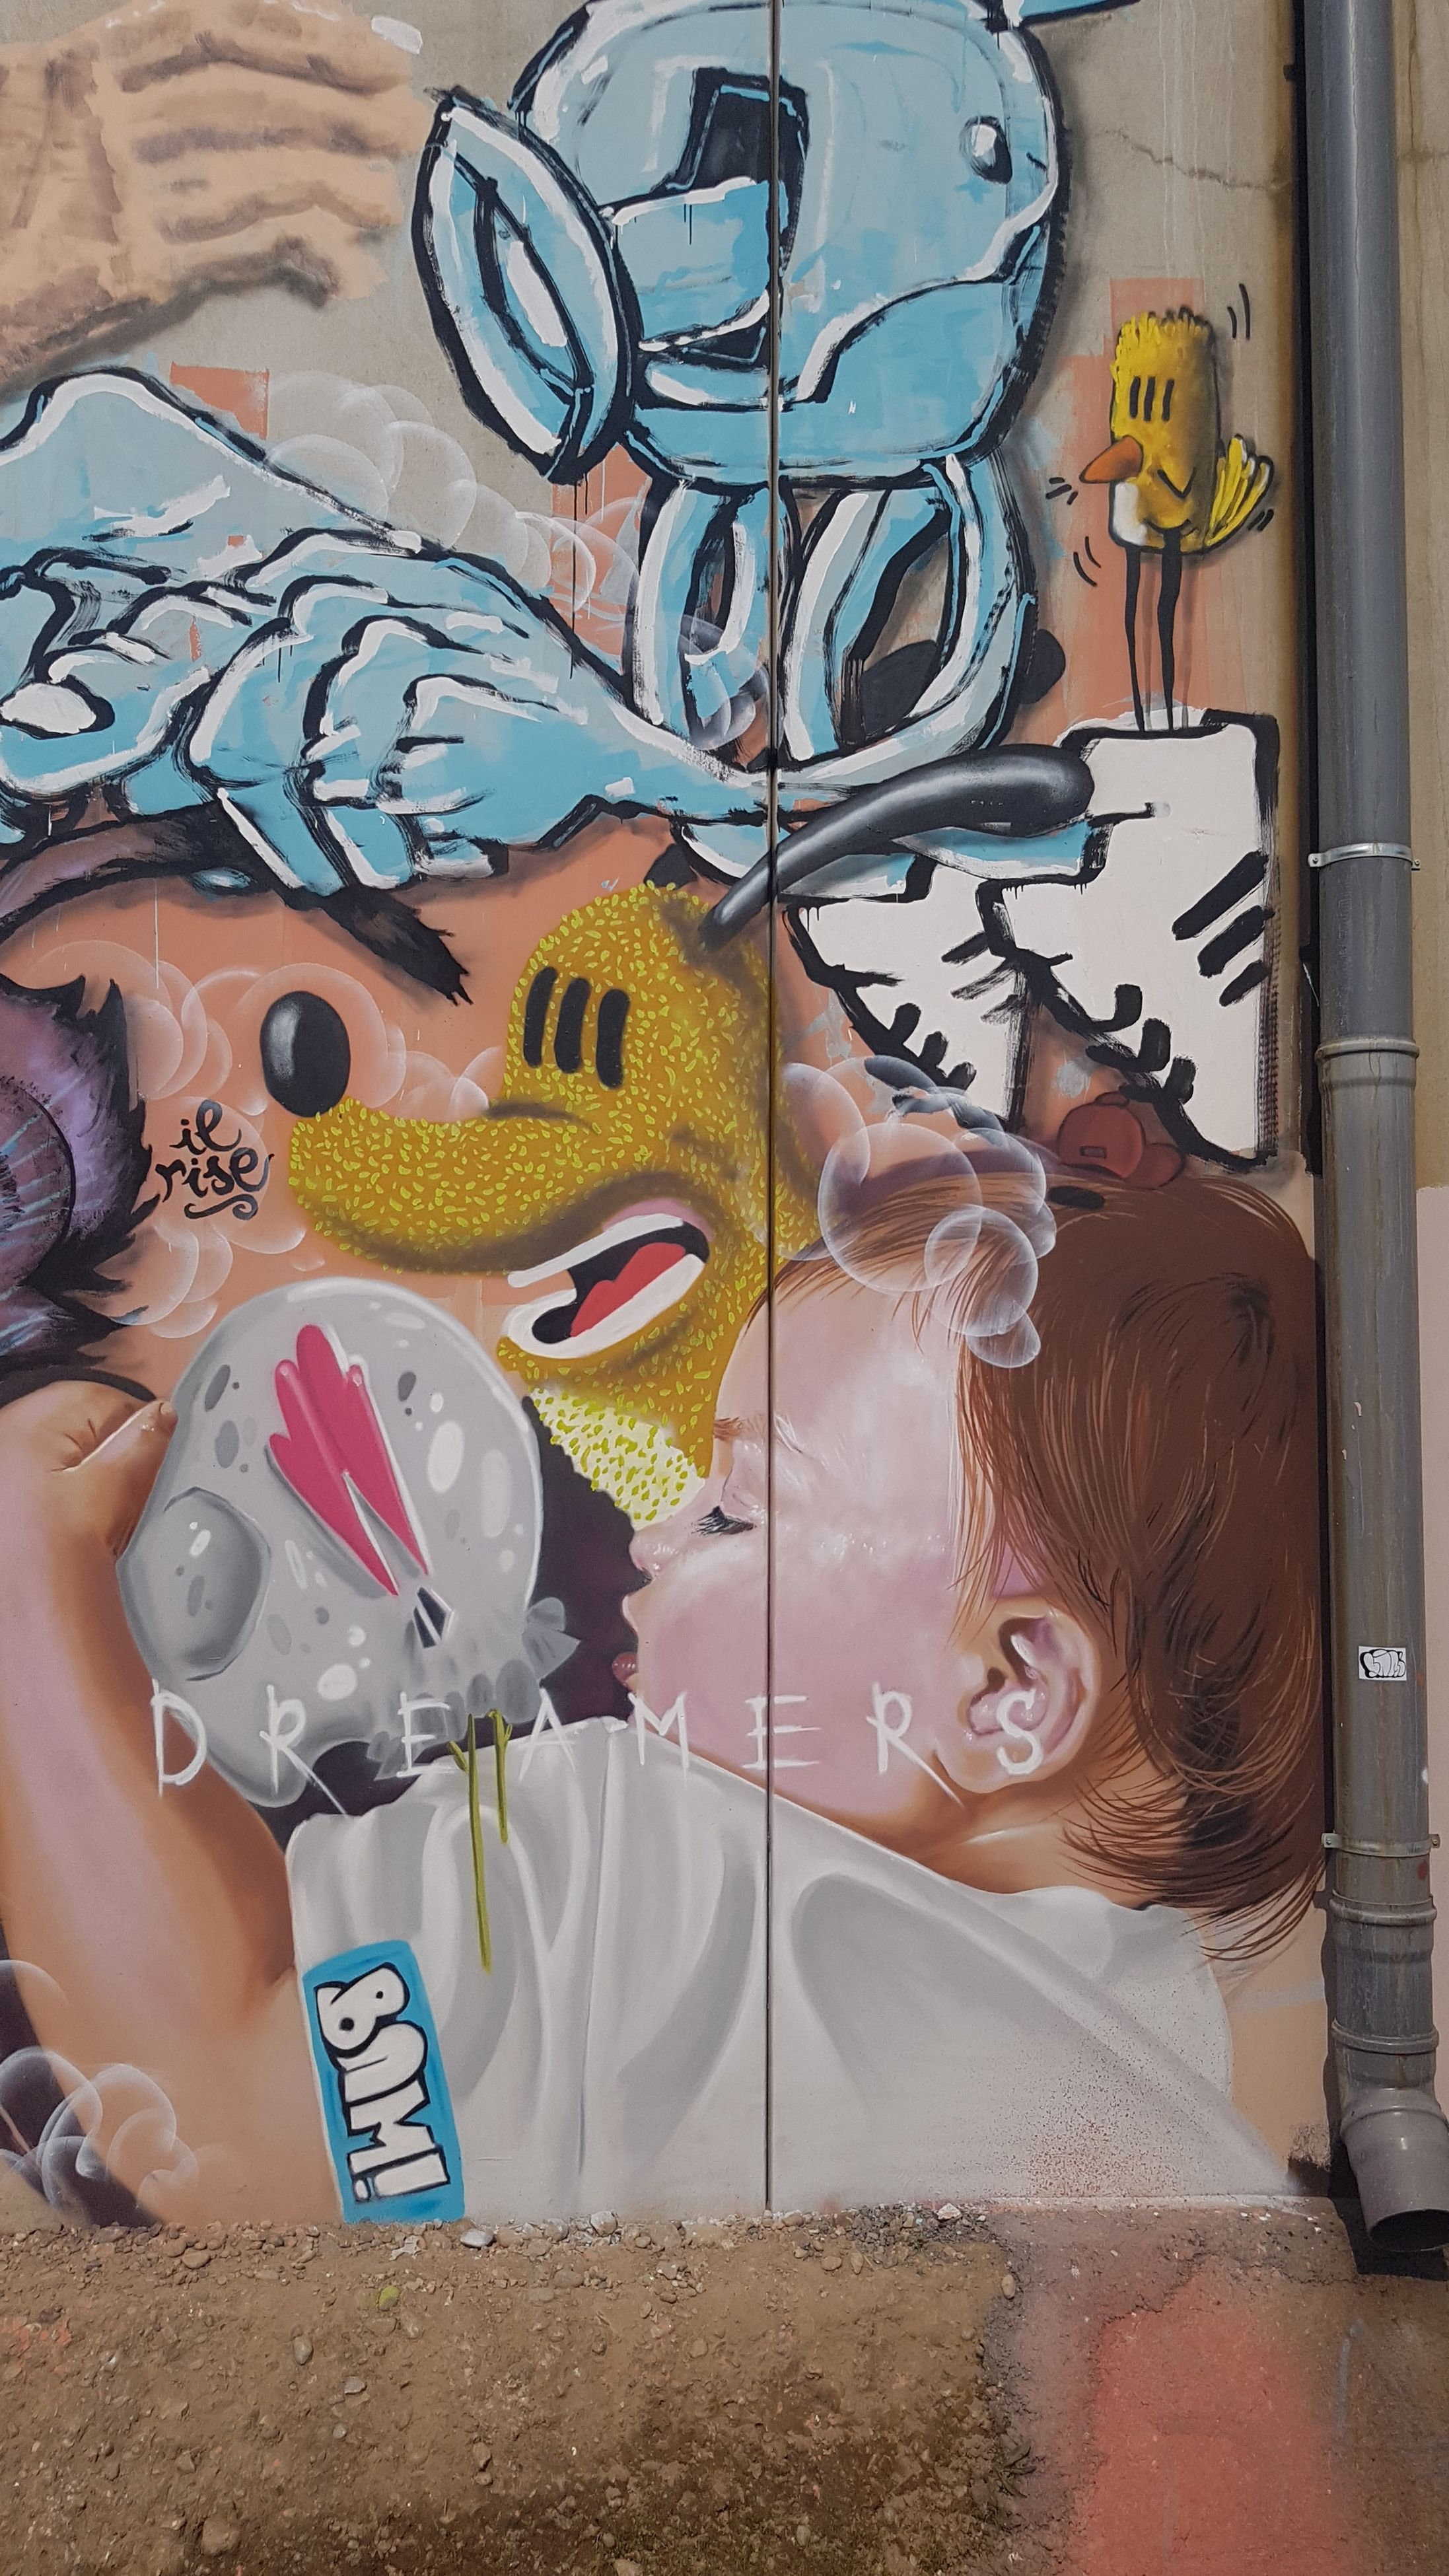 multi colored, spray paint, people, adults only, adult, artist, young adult, close-up, day, outdoors